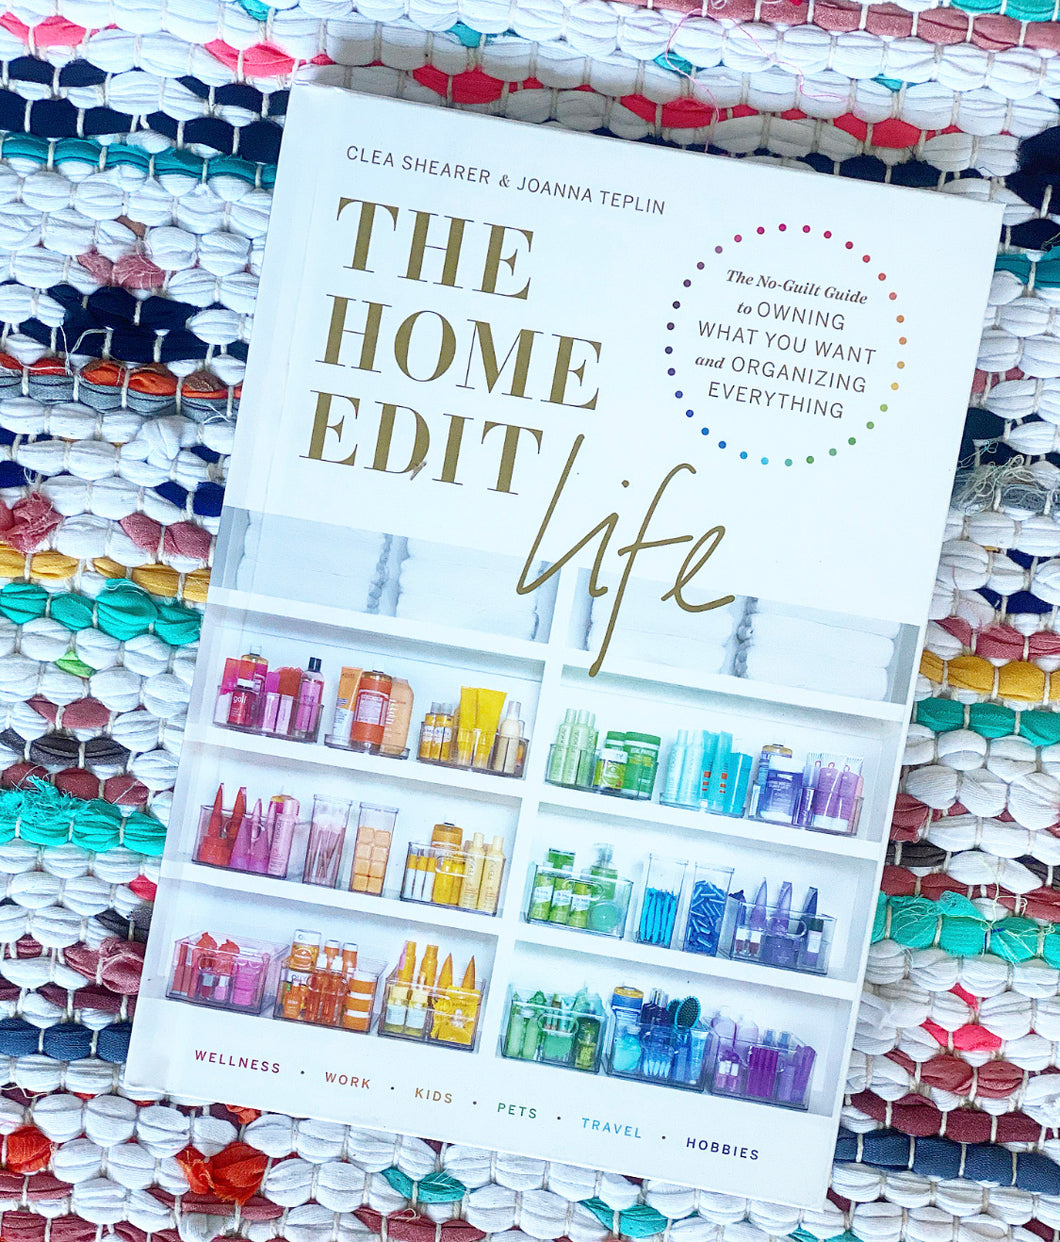 The Home Edit Life: The No-Guilt Guide to Owning What You Want and Organizing Everything | Clea Shearer